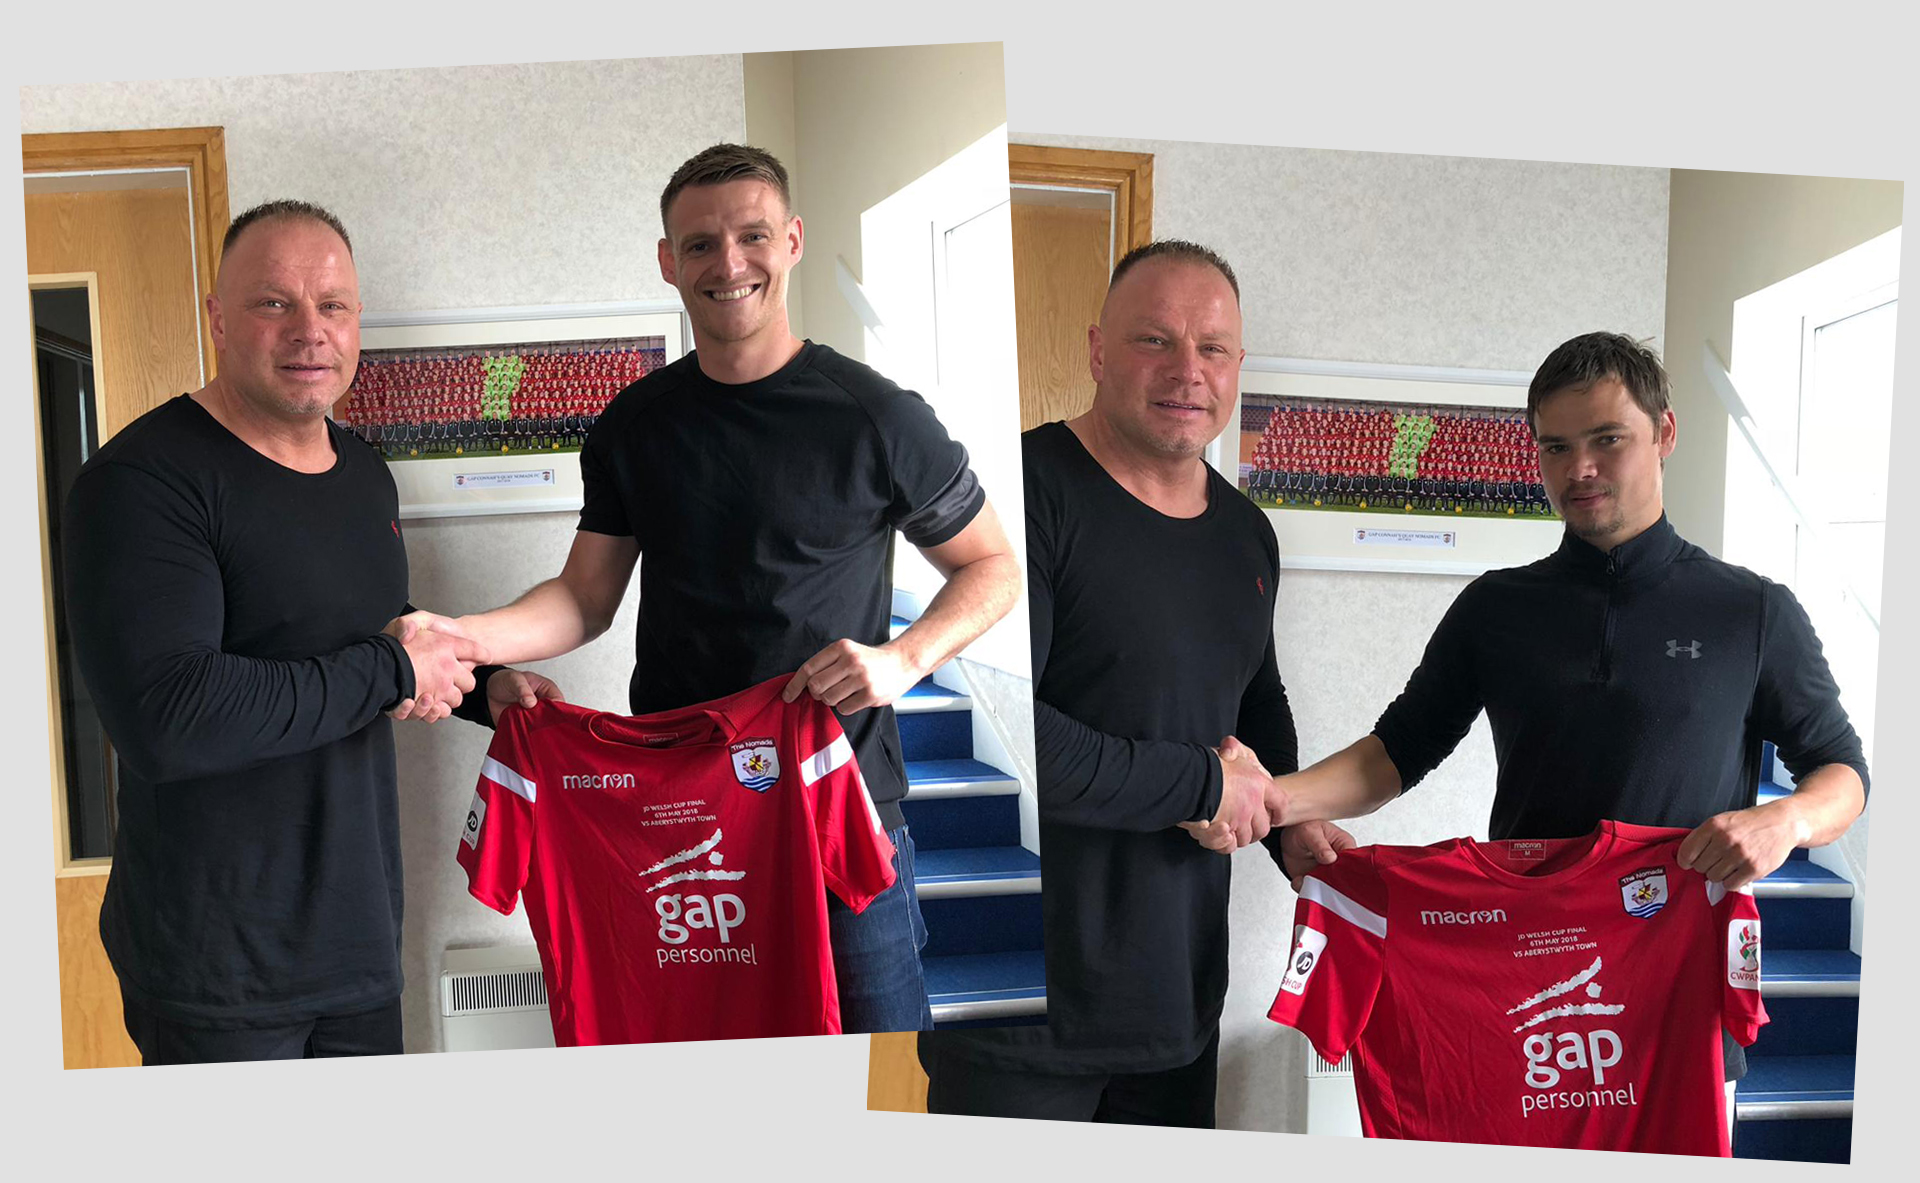 Andy Morrison pictured with new signings, Michael Parker (left) and Noah Edwards (right)